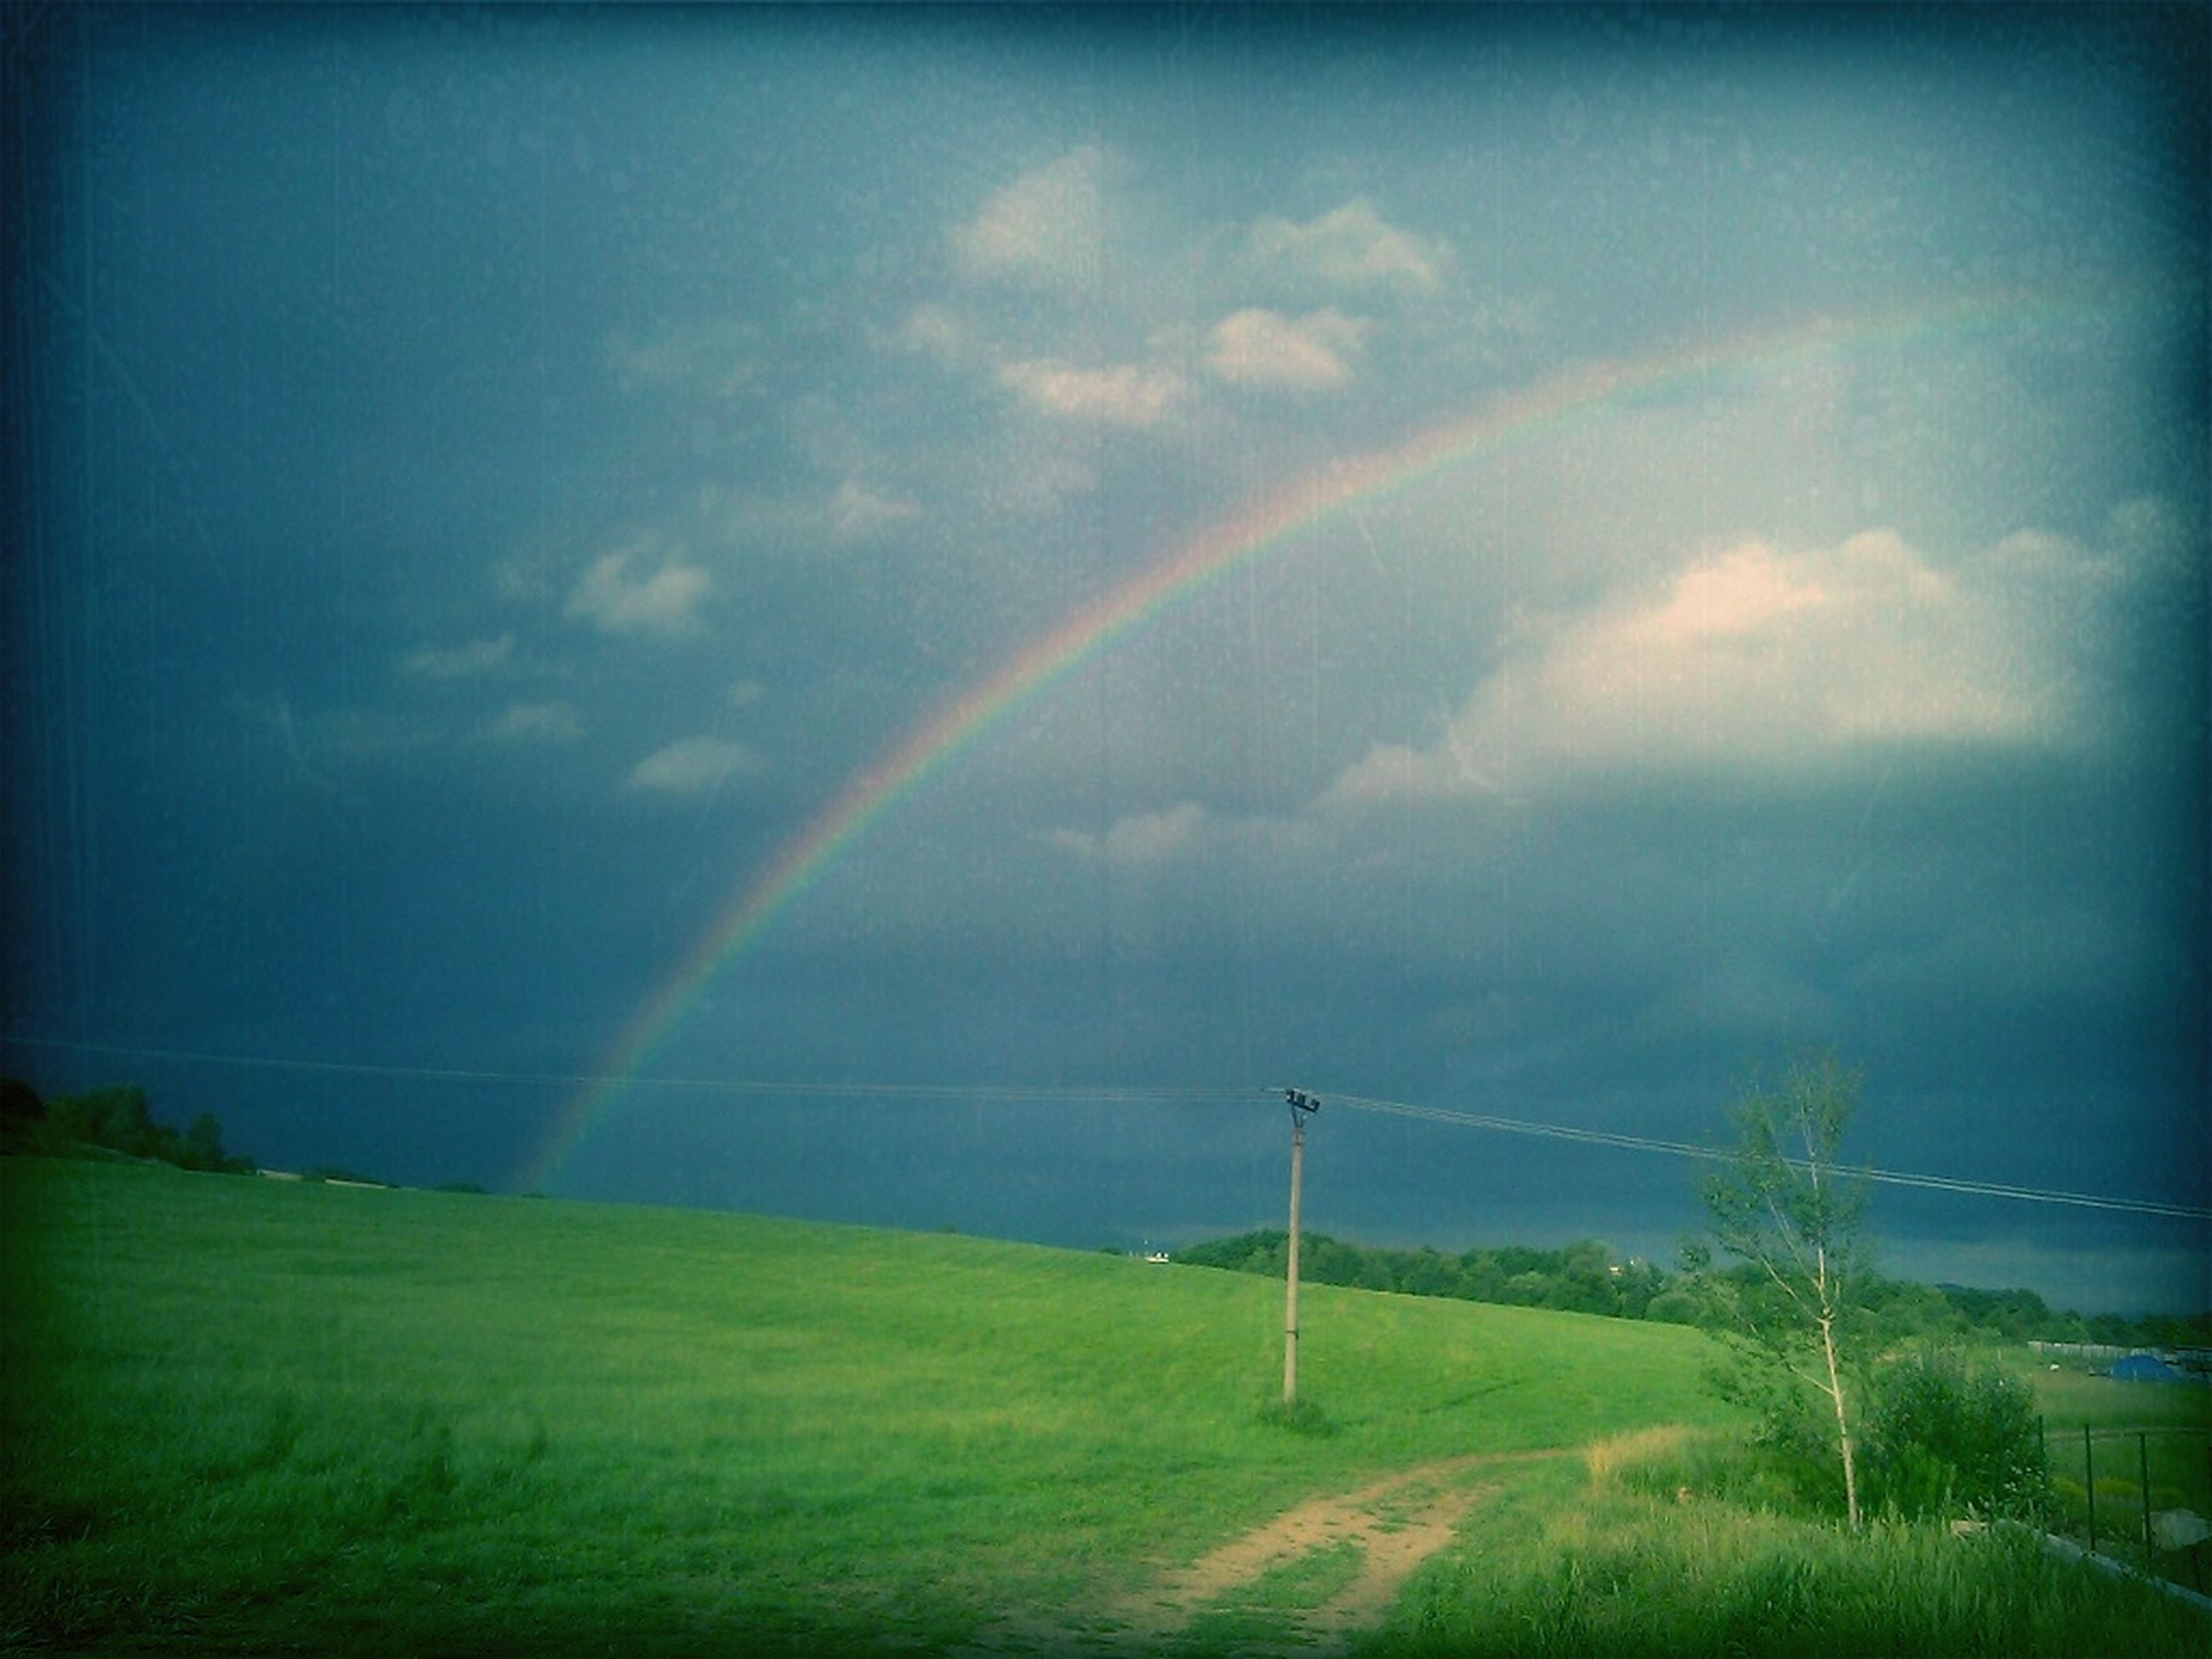 landscape, sky, rainbow, tranquility, tranquil scene, scenics, field, beauty in nature, grass, cloud - sky, nature, weather, cloudy, idyllic, rural scene, grassy, green color, cloud, non-urban scene, storm cloud